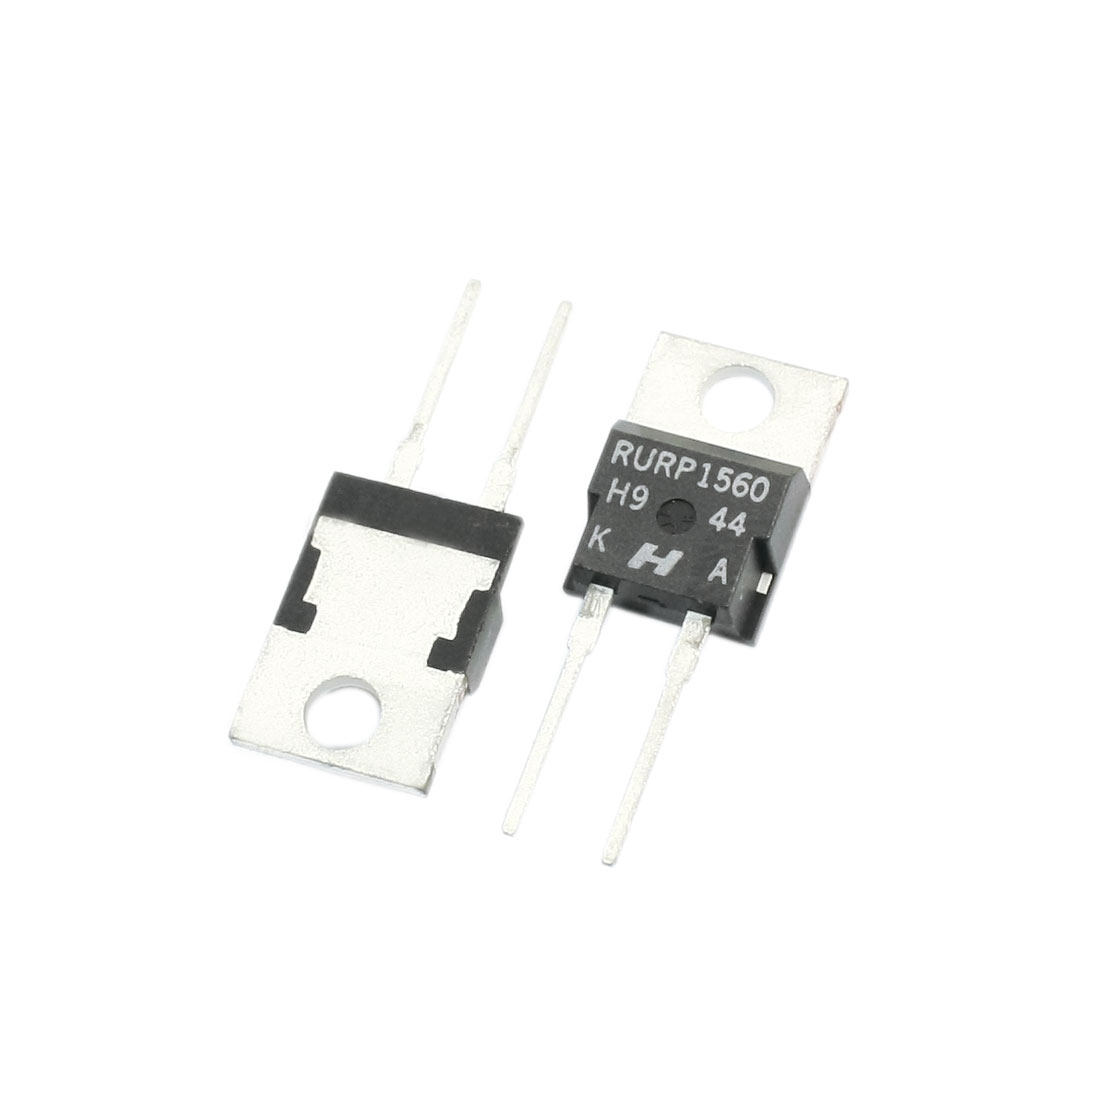 2Pcs RURP1560 Electronic Ultrafast Recovery Rectifier Diode